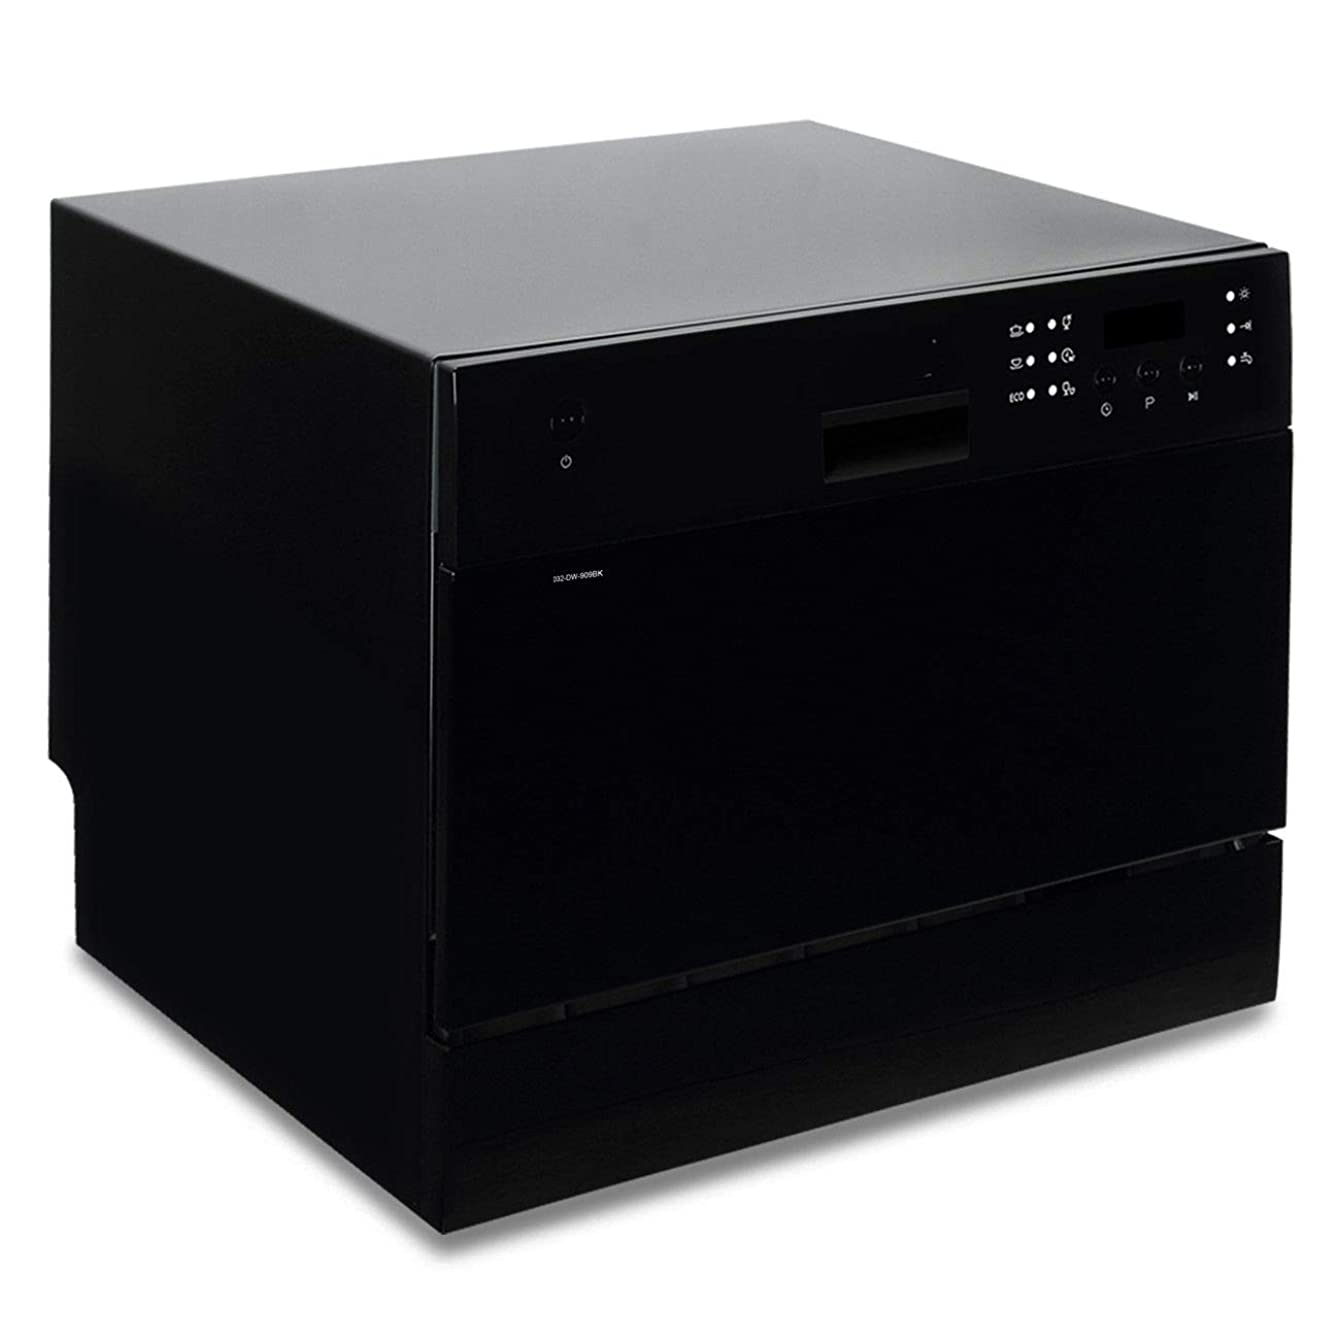 User Friendly Controls, Compact Countertop, Portable Stainless Steel Dishwasher Unit For Small Kitchen Countertop, Black